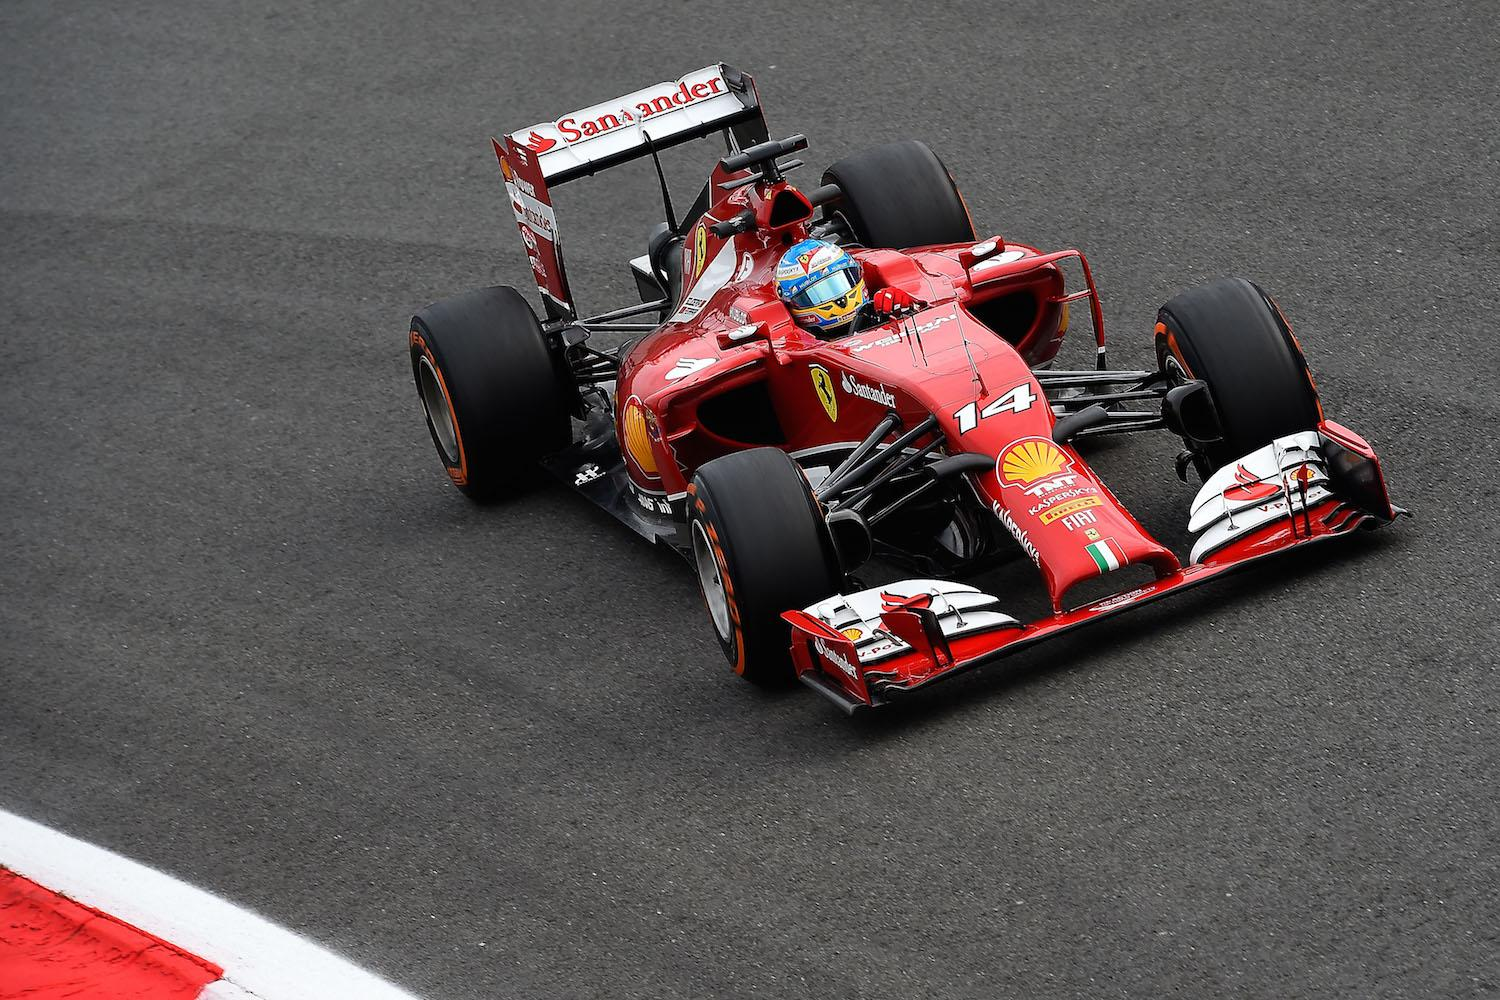 Formula Cars: Formula 1 Might See A Return To 1,000 Hp Engines In 2017